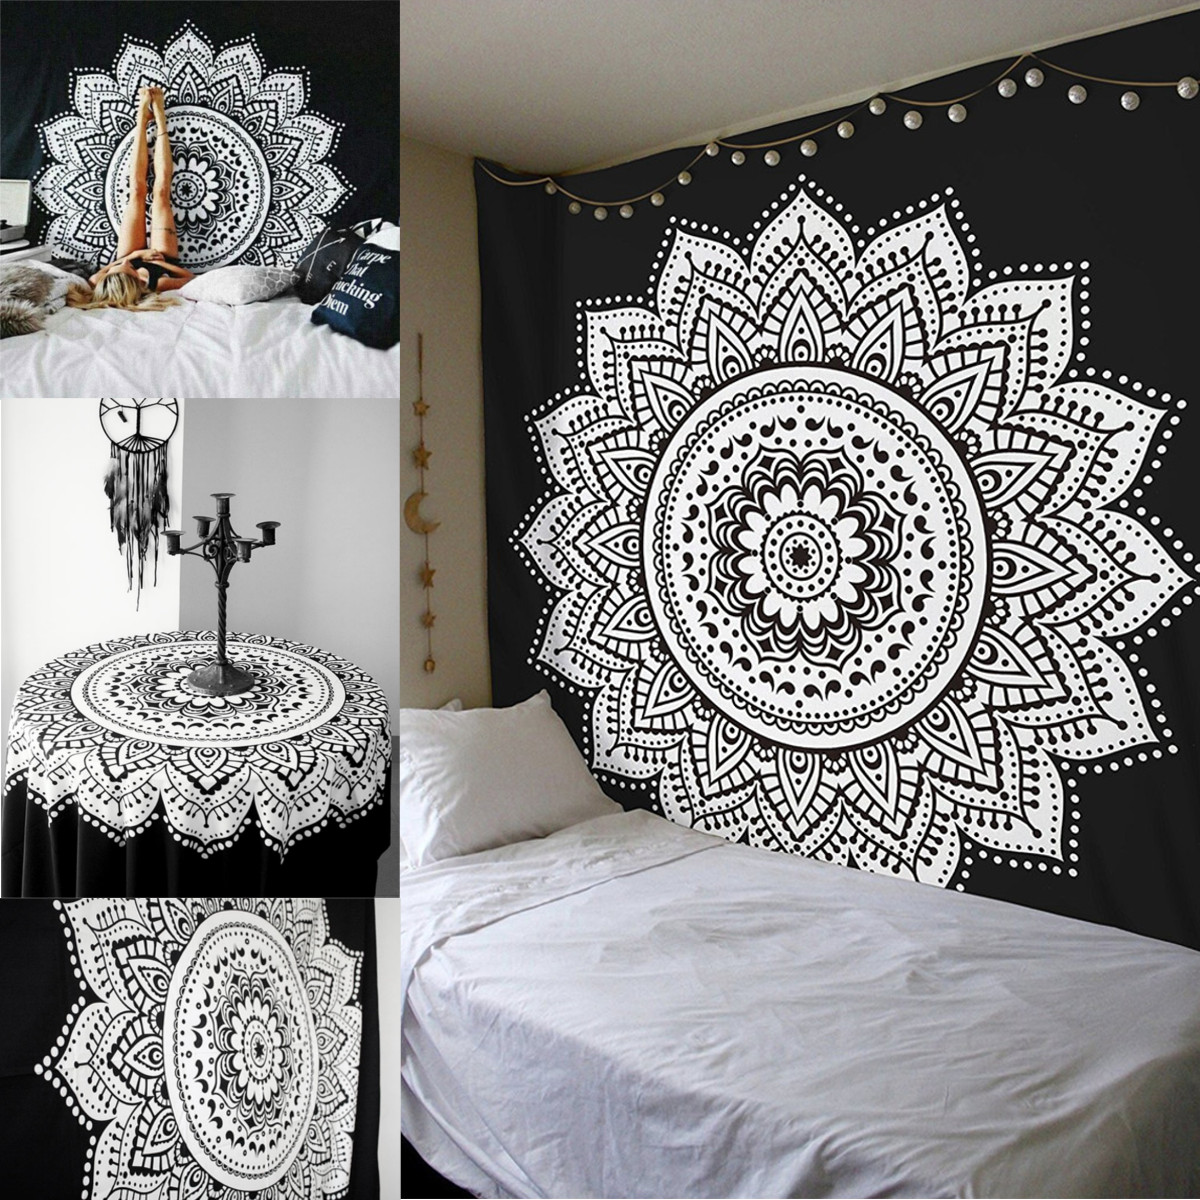 Dorm Decor Wall Hanging Hippie Tapestry Bohemian Bedspread Indian Ethnic Mandala Father's Day gift